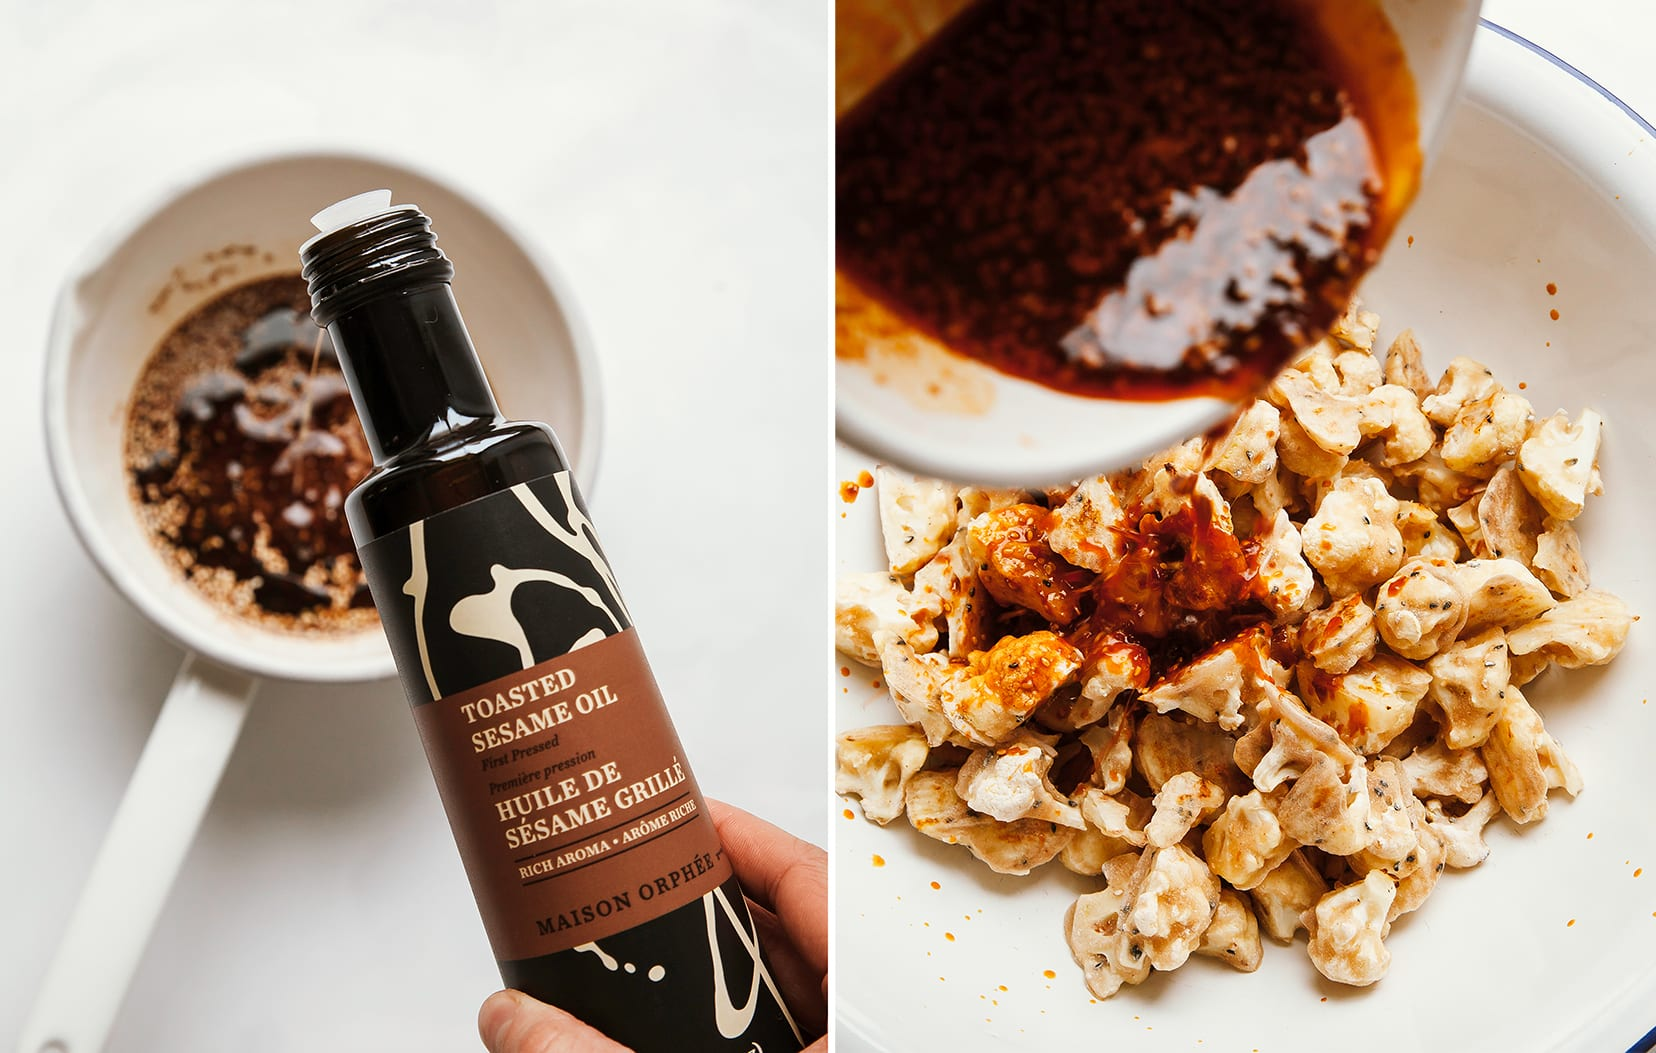 Two images show: toasted sesame oil being poured into a pot and also a spicy red sauce being poured on top of cauliflower.